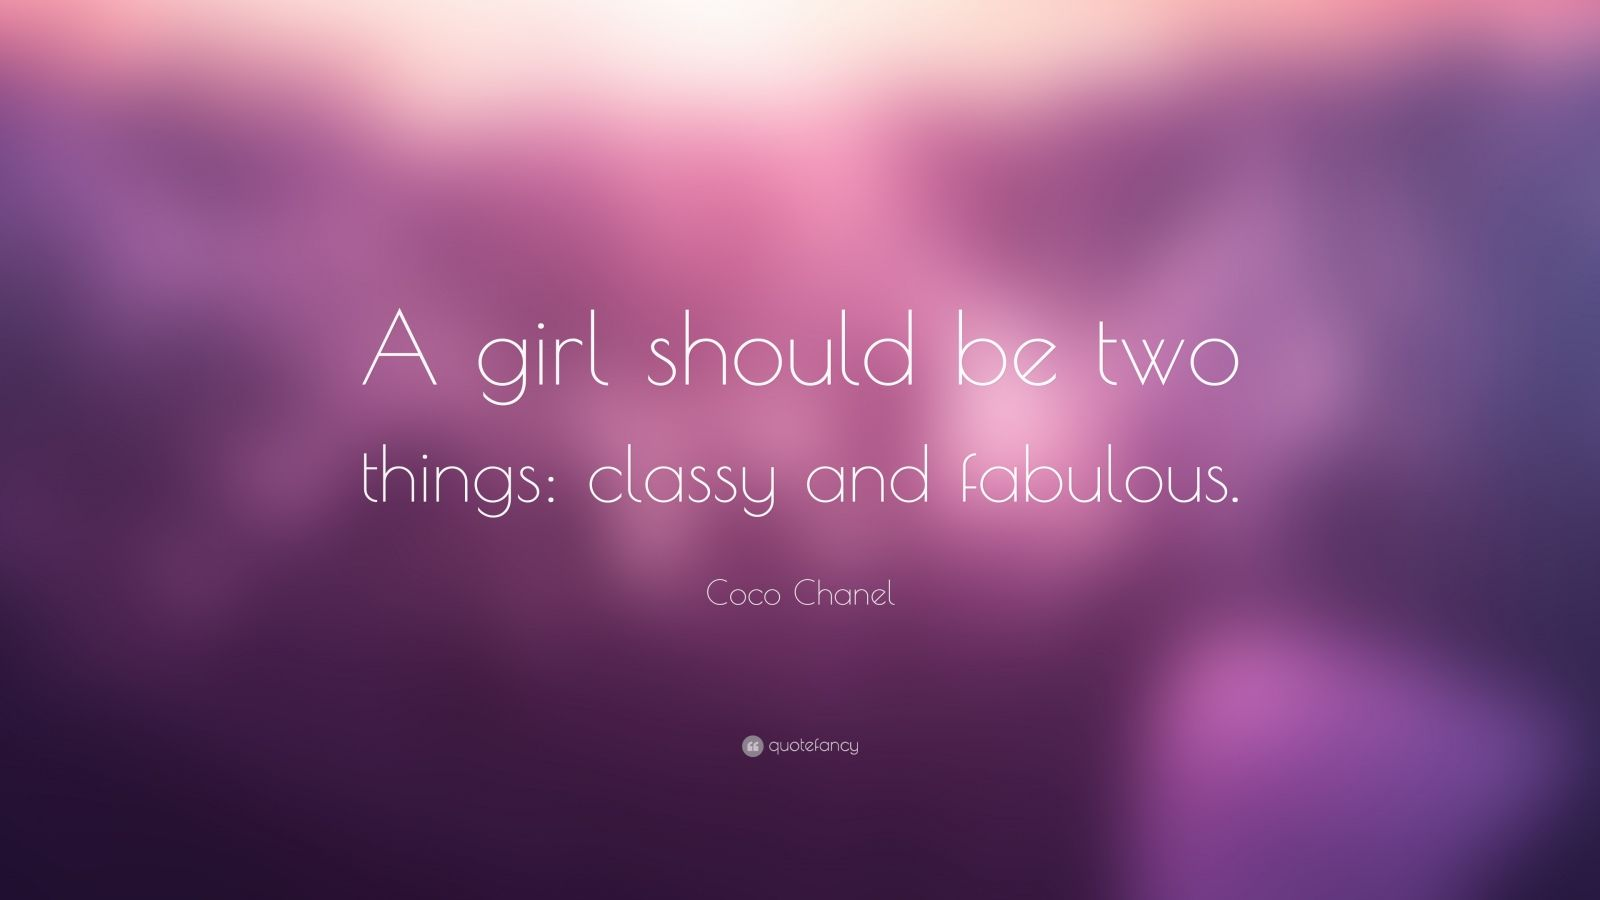 Fall Computer Wallpaper Backgrounds Coco Chanel Quotes 100 Wallpapers Quotefancy